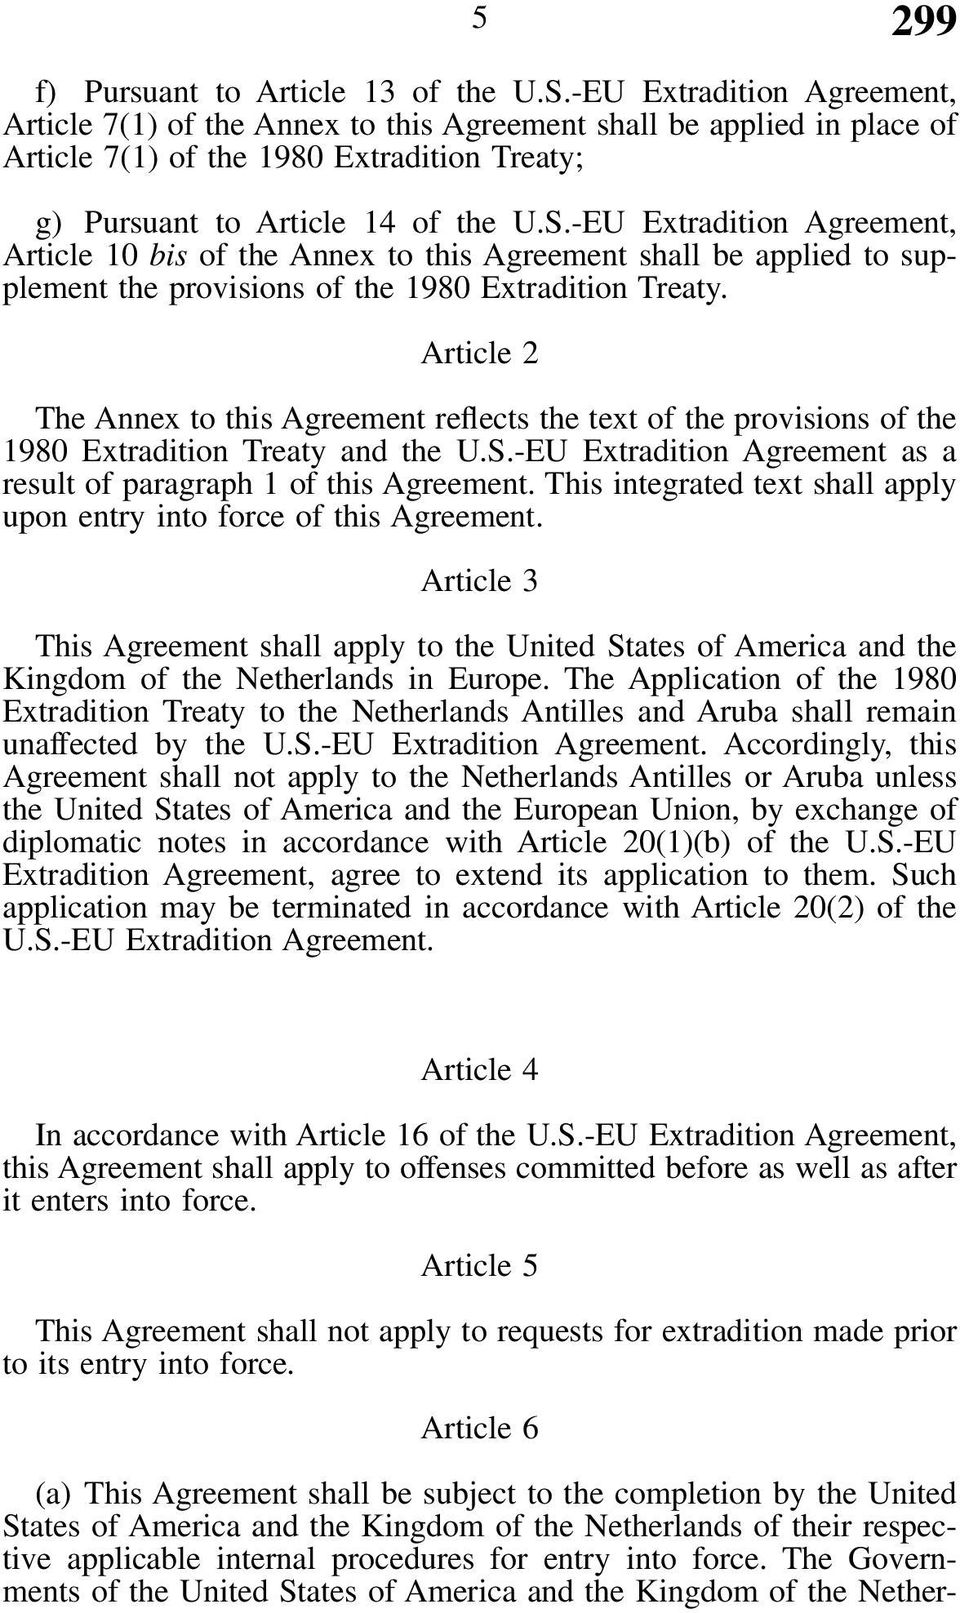 -EU Extradition Agreement, Article 10 bis of the Annex to this Agreement shall be applied to supplement the provisions of the 1980 Extradition Treaty.